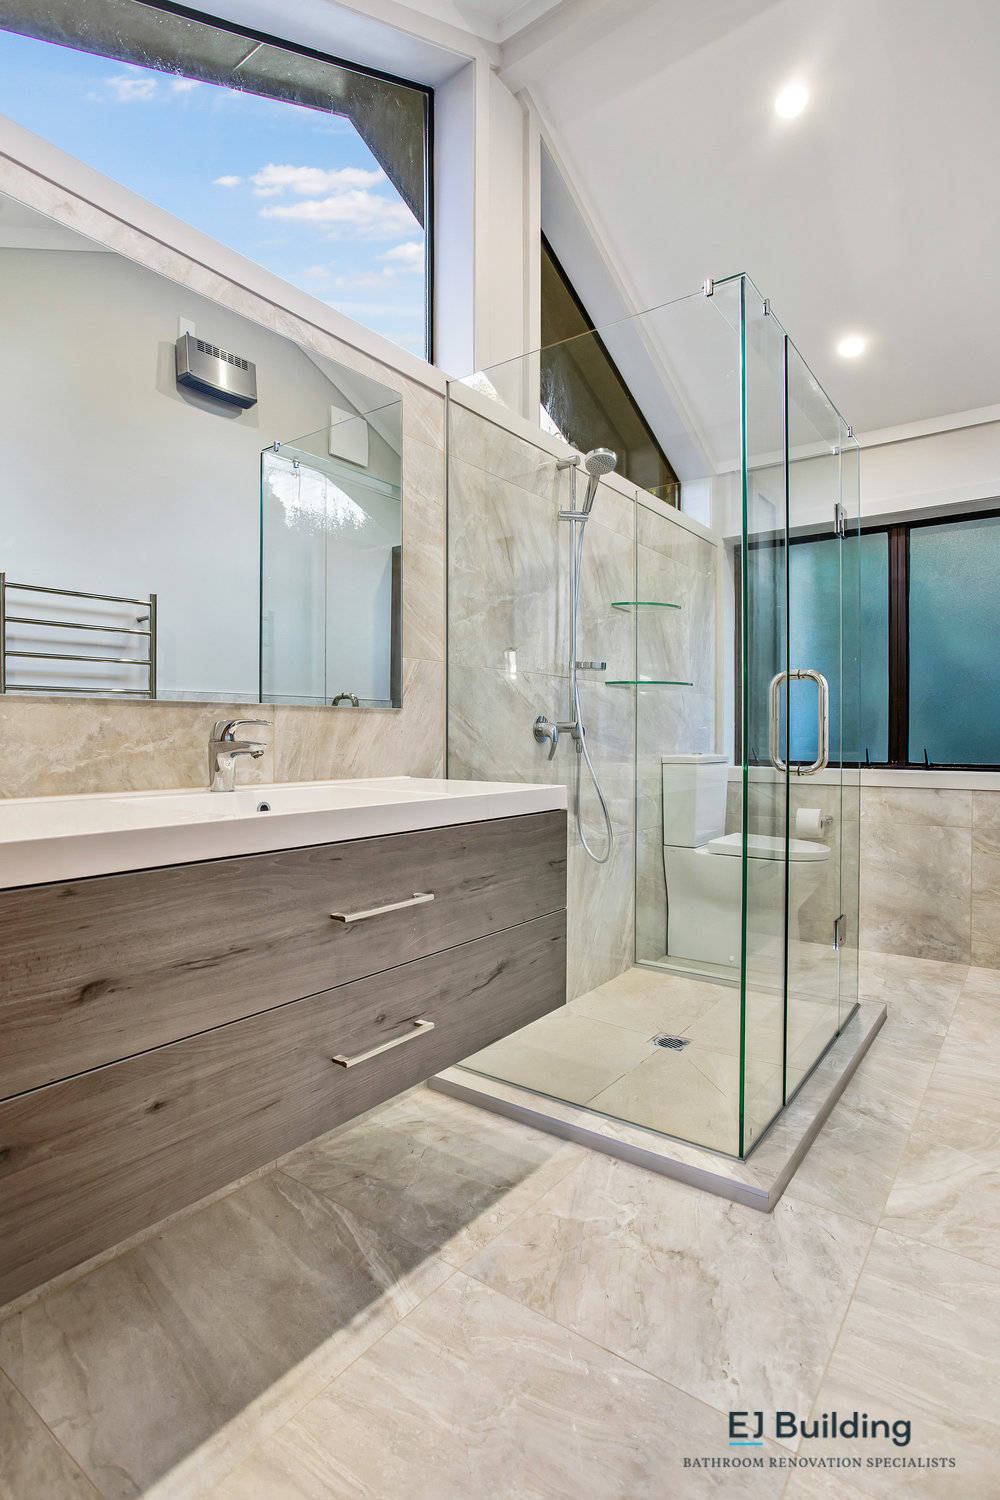 J Building Bathroom Renovation Specialists. Renovating Auckland one bathroom at a time.